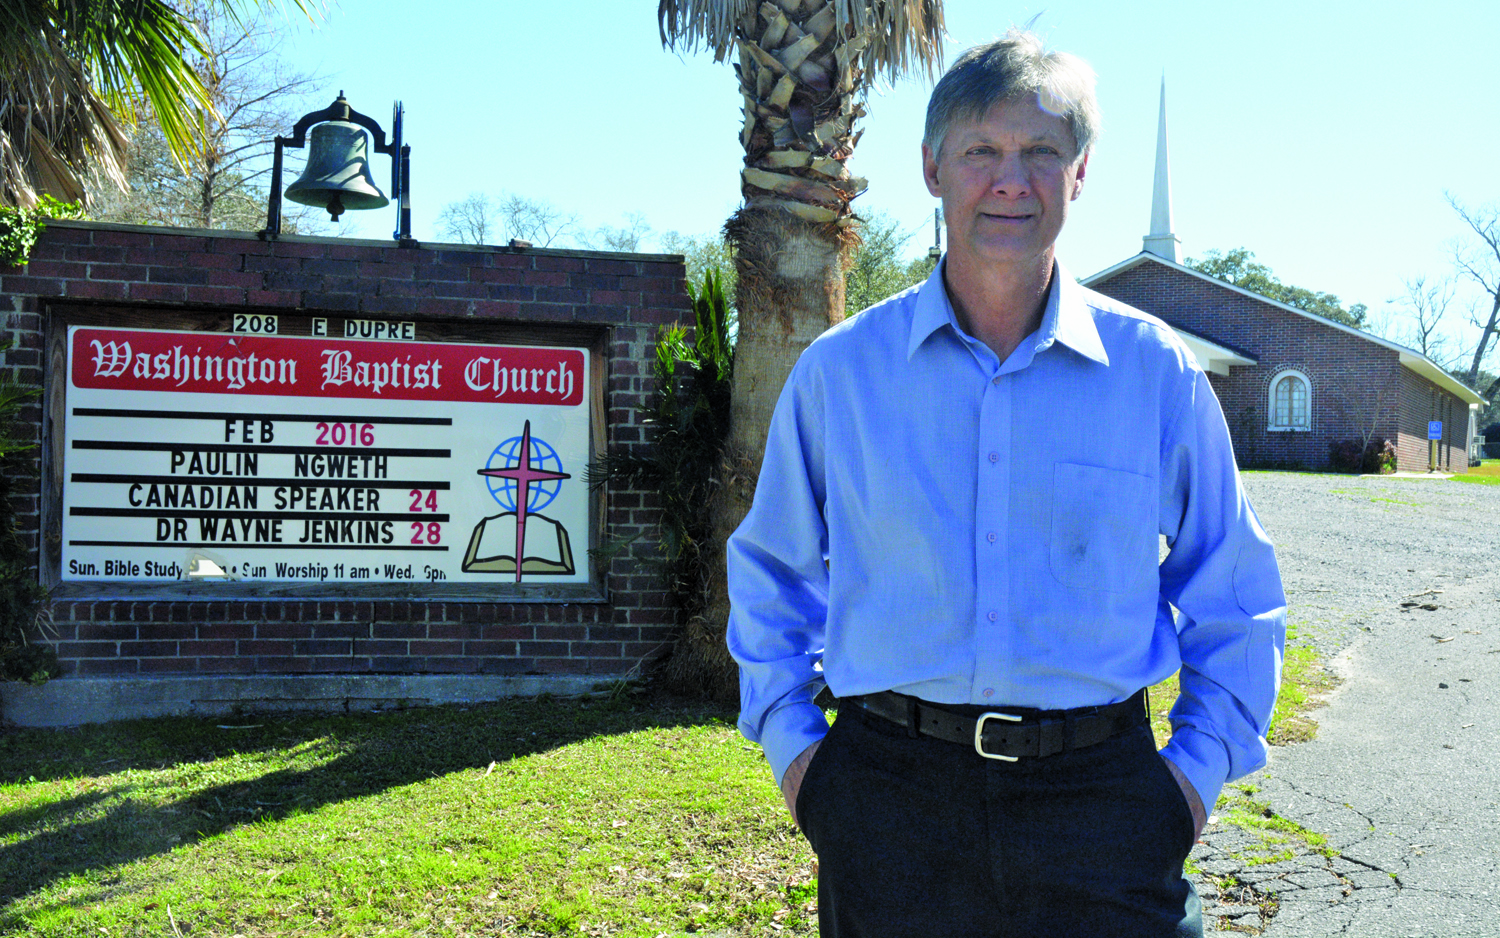 On any given Sunday morning, Louis Charrier is preaching from the pulpit at Washington Baptist Church, a church he has pastored since 1994. In more than 30 years of ministry, Charrier has planted 17 churches in the Acadiana region.